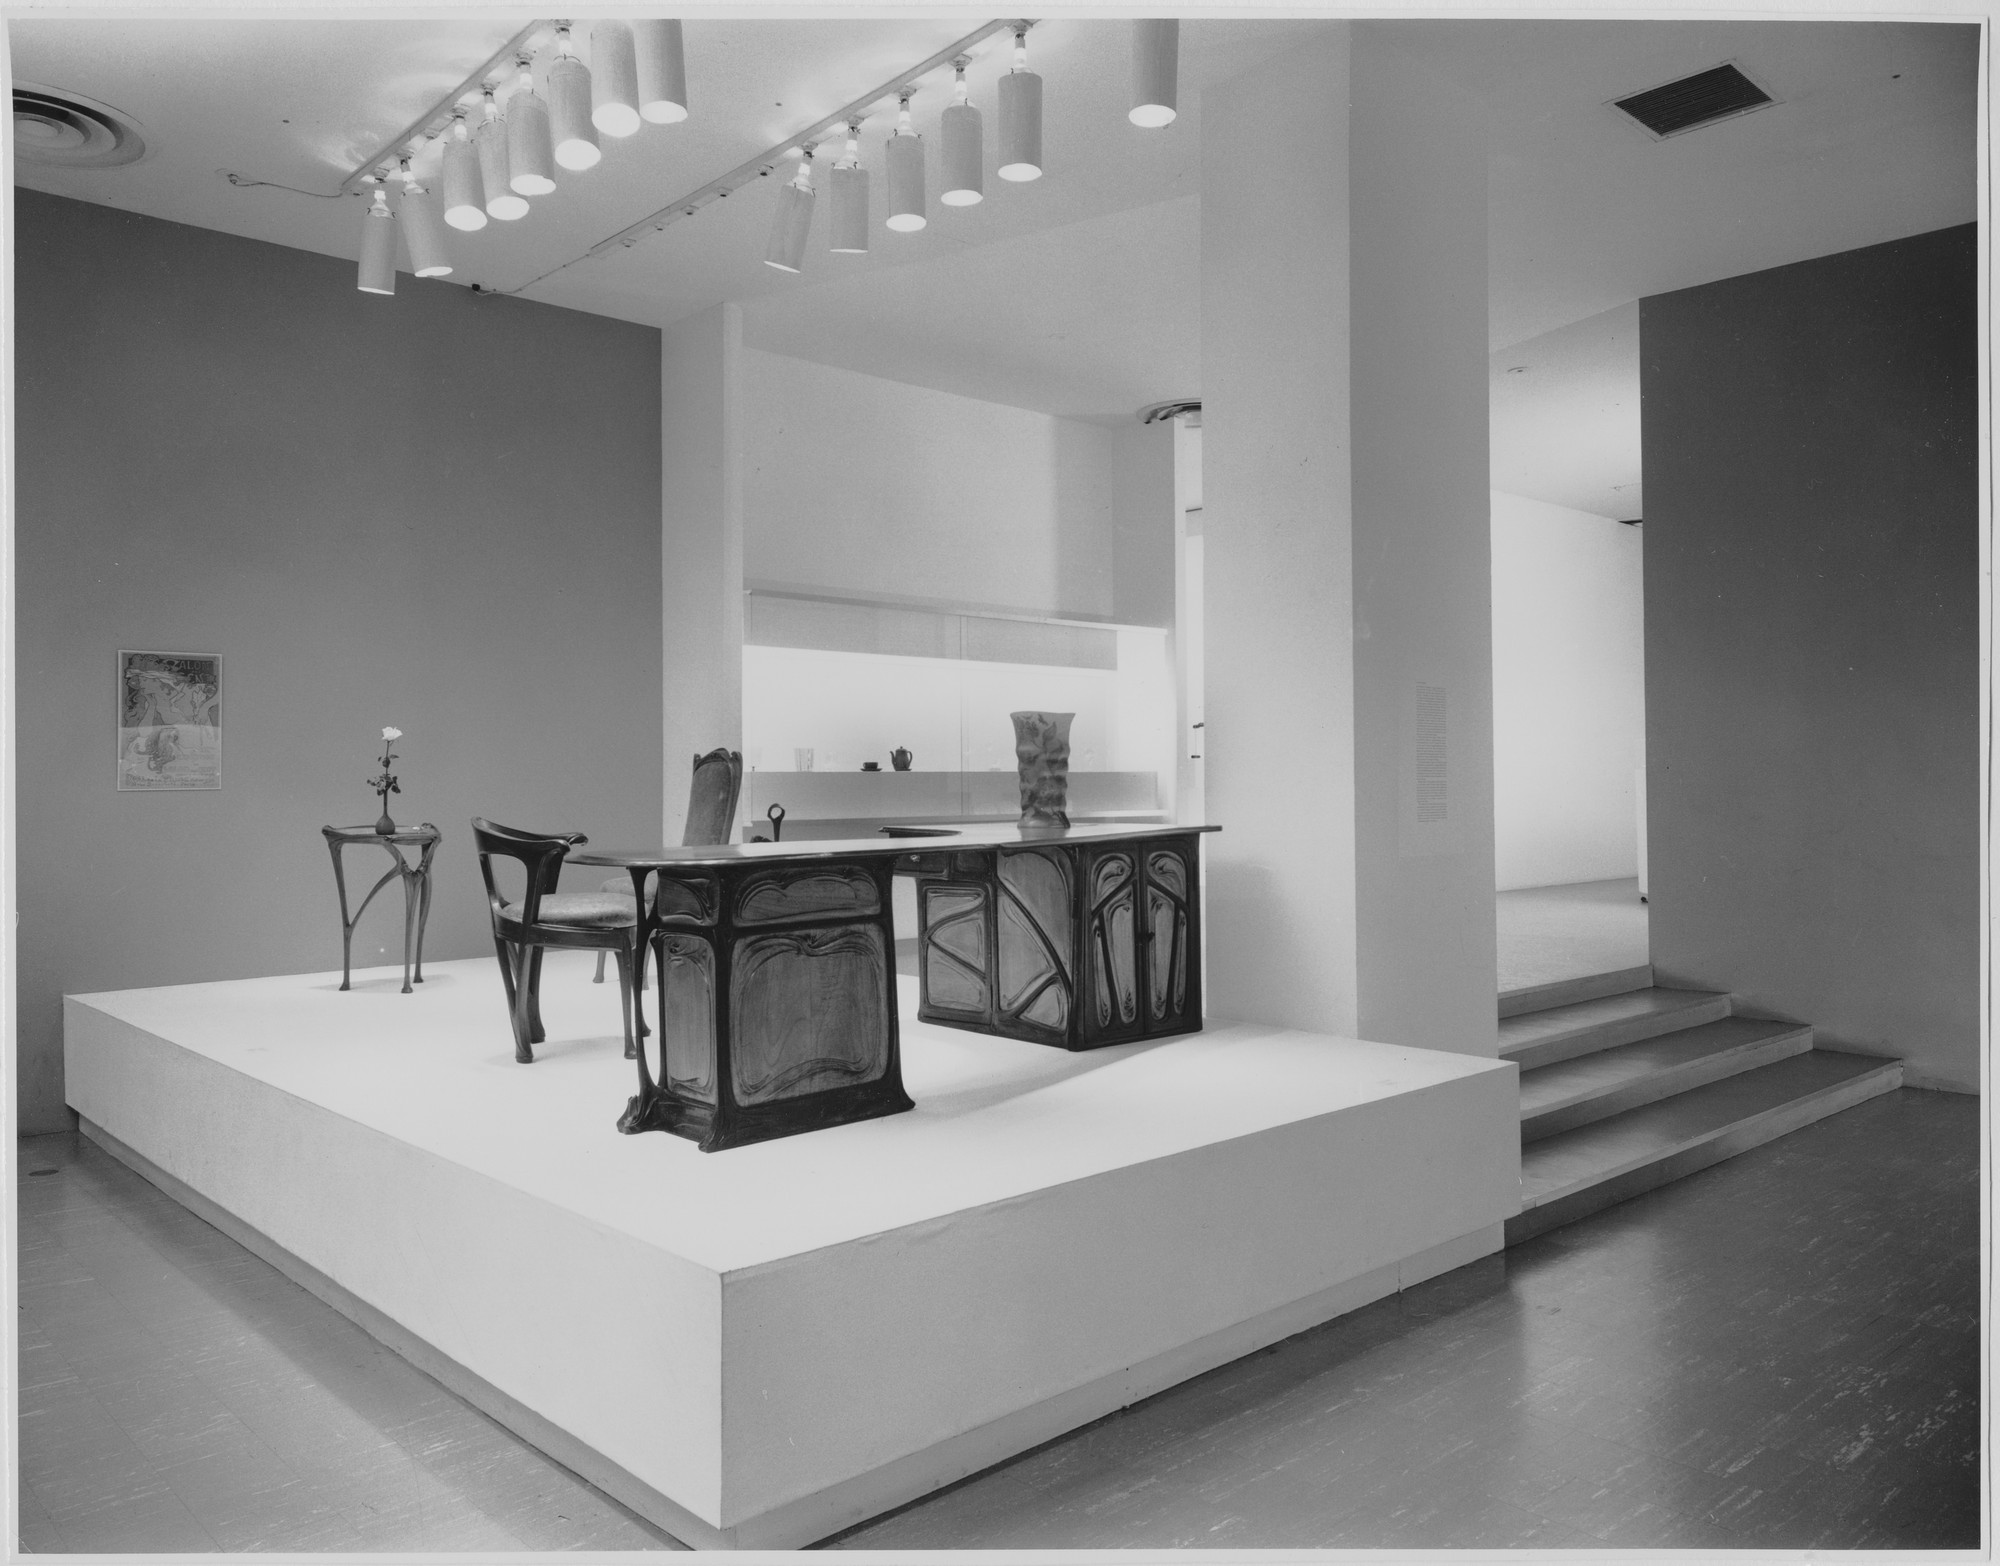 "Installation view of the exhibition, ""20th Century Design from the Museum Collection."" December 17, 1958–February 23, 1959. Photographic Archive. The Museum of Modern Art Archives, New York. IN637.1. Photograph by Ben Schnall."